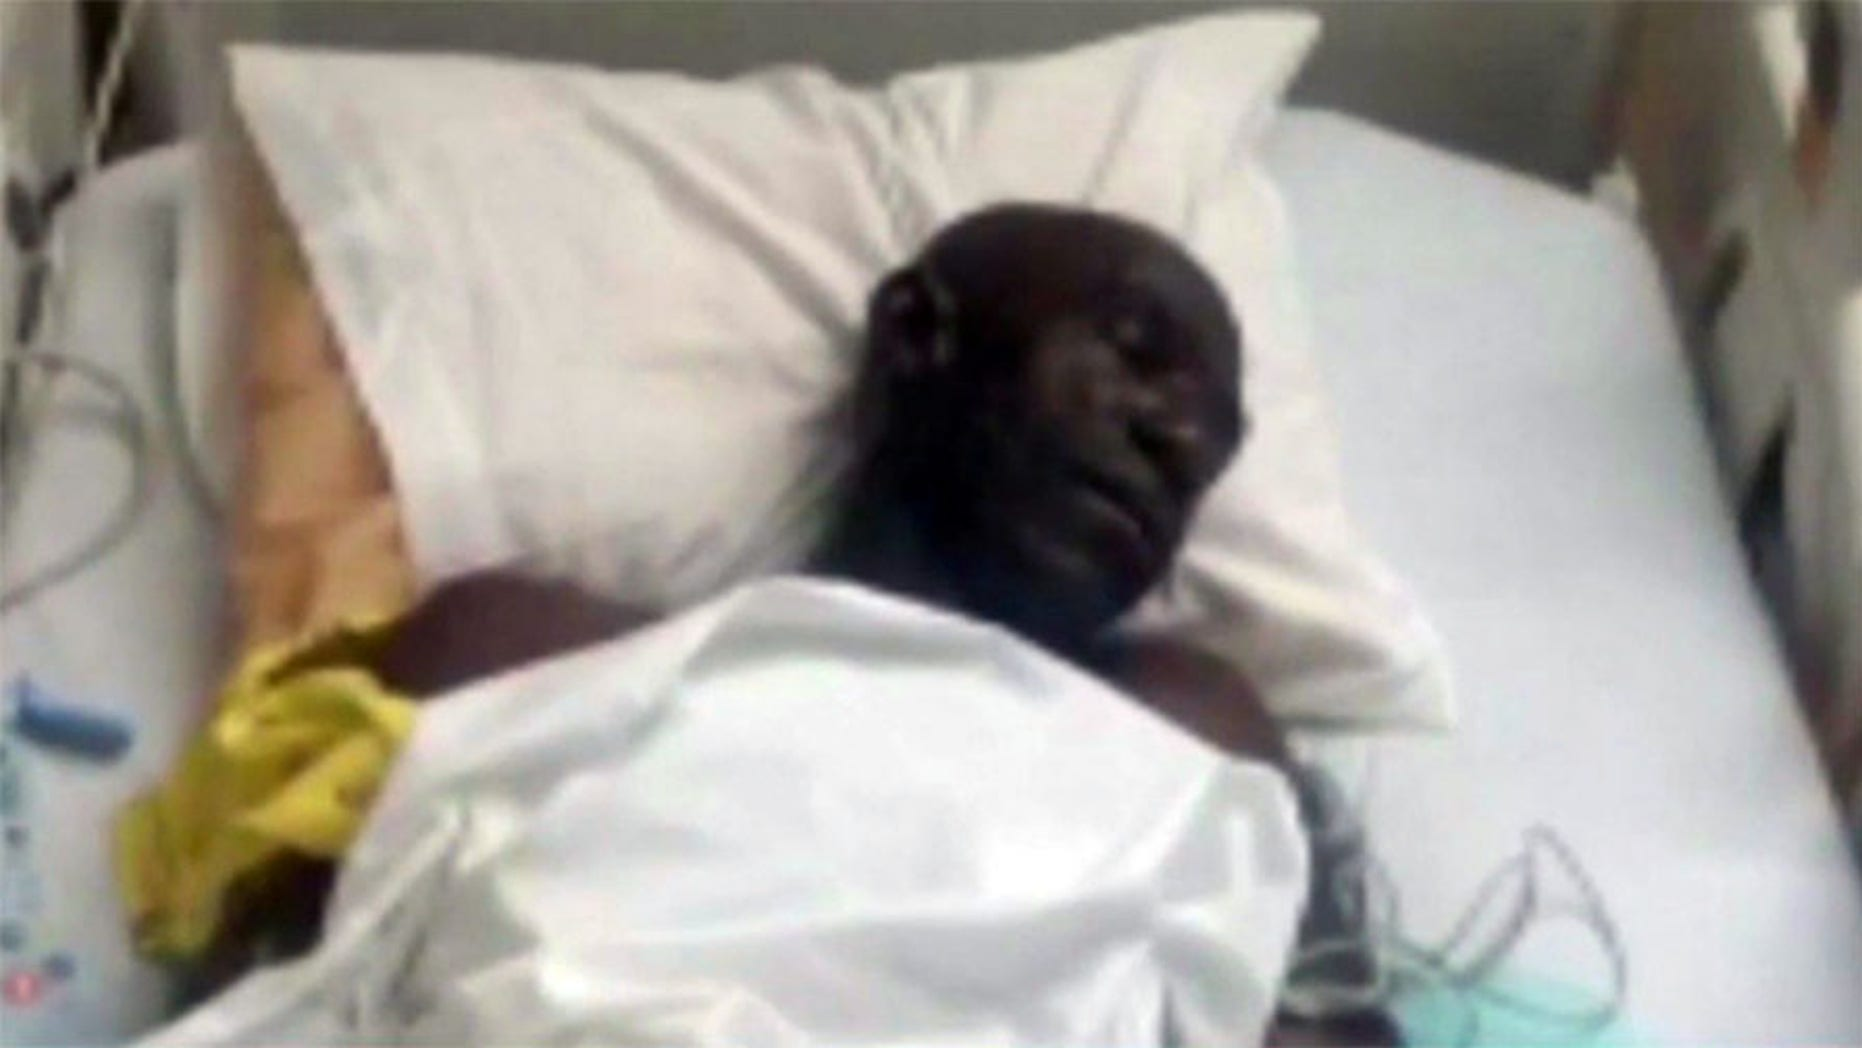 A Nigerian man flying to Chicago from Dubai claims he was beaten, bound and deprived of food and water after an altercation occurred between him an a flight attendant over his seat assignment.